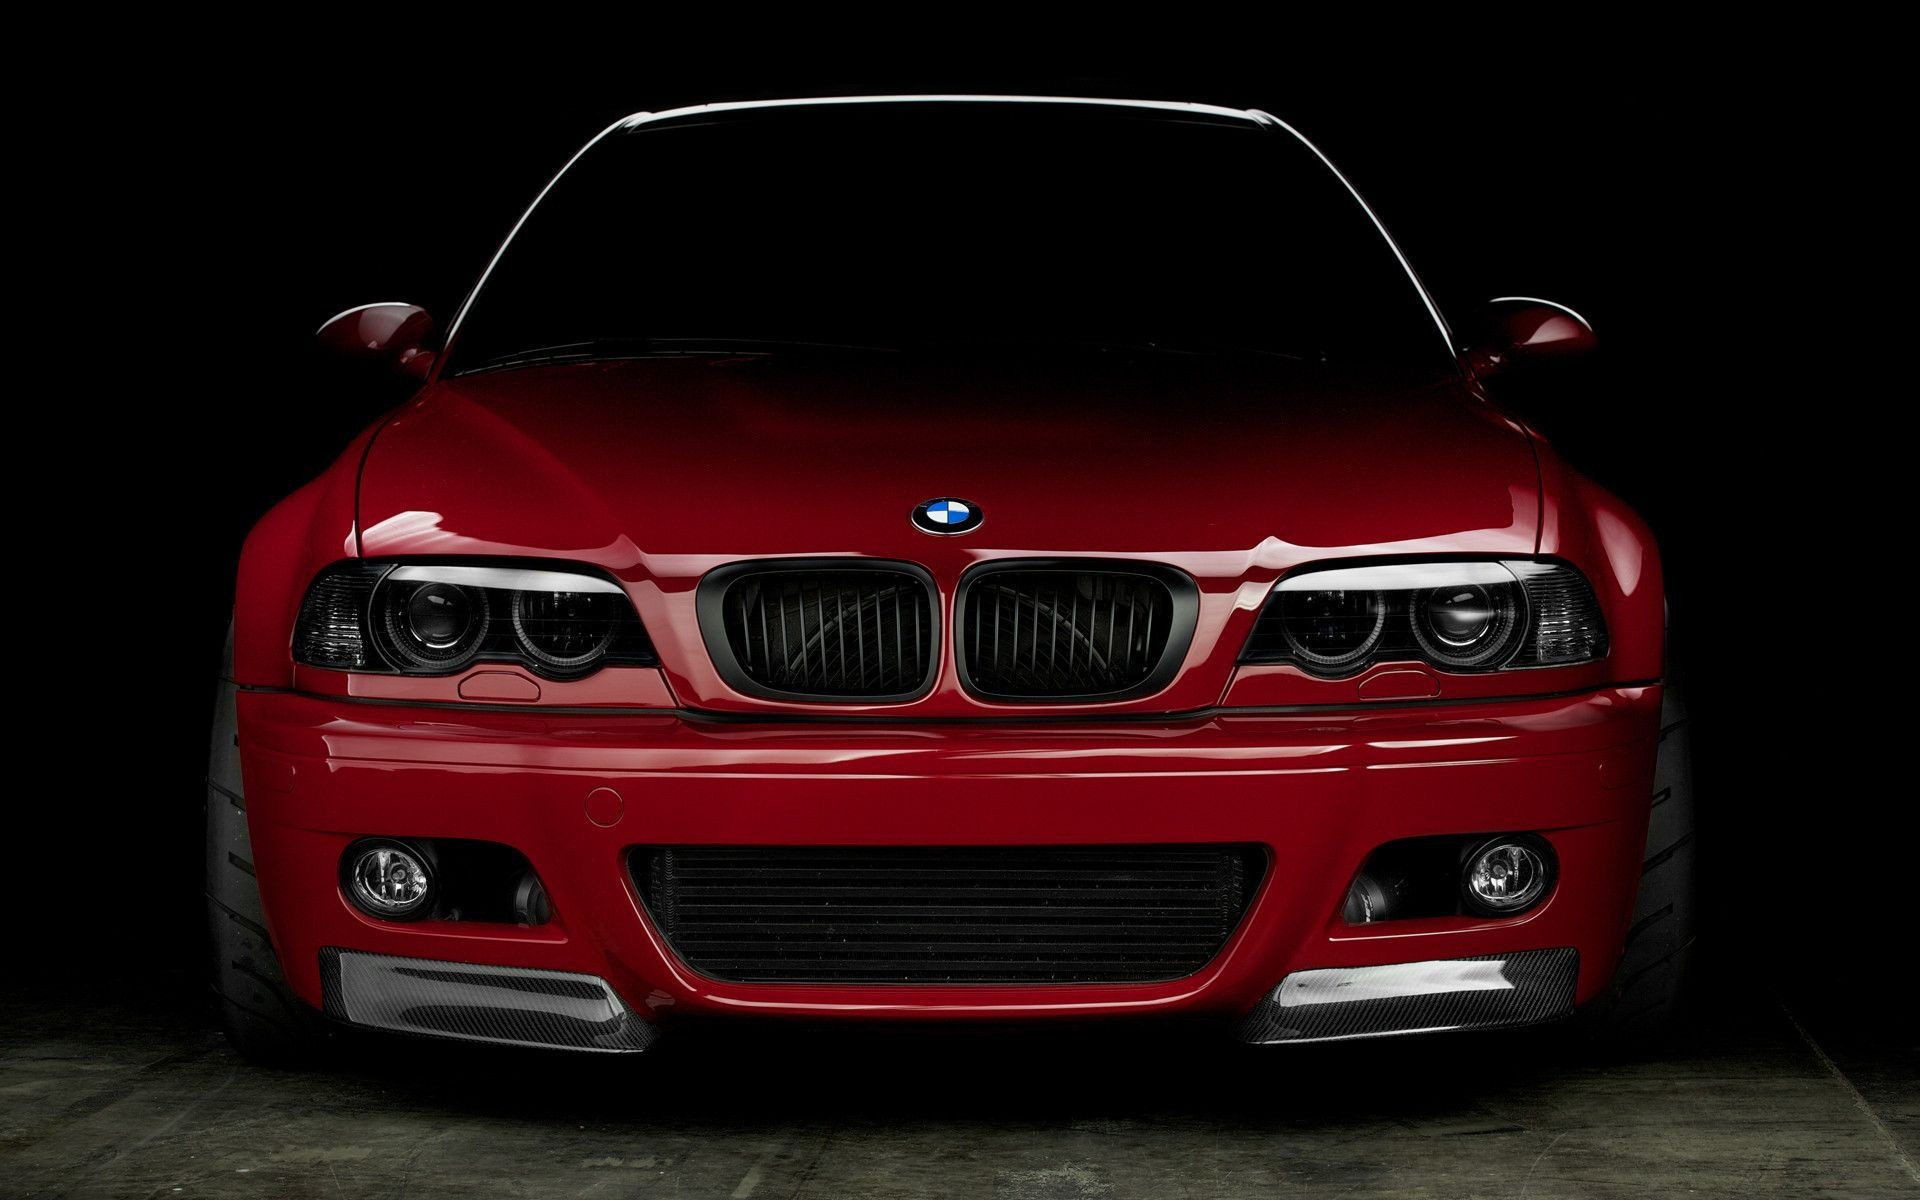 1920x1200 undefined M3 BMW Wallpapers (42 Wallpapers) | Adorable Wallpapers